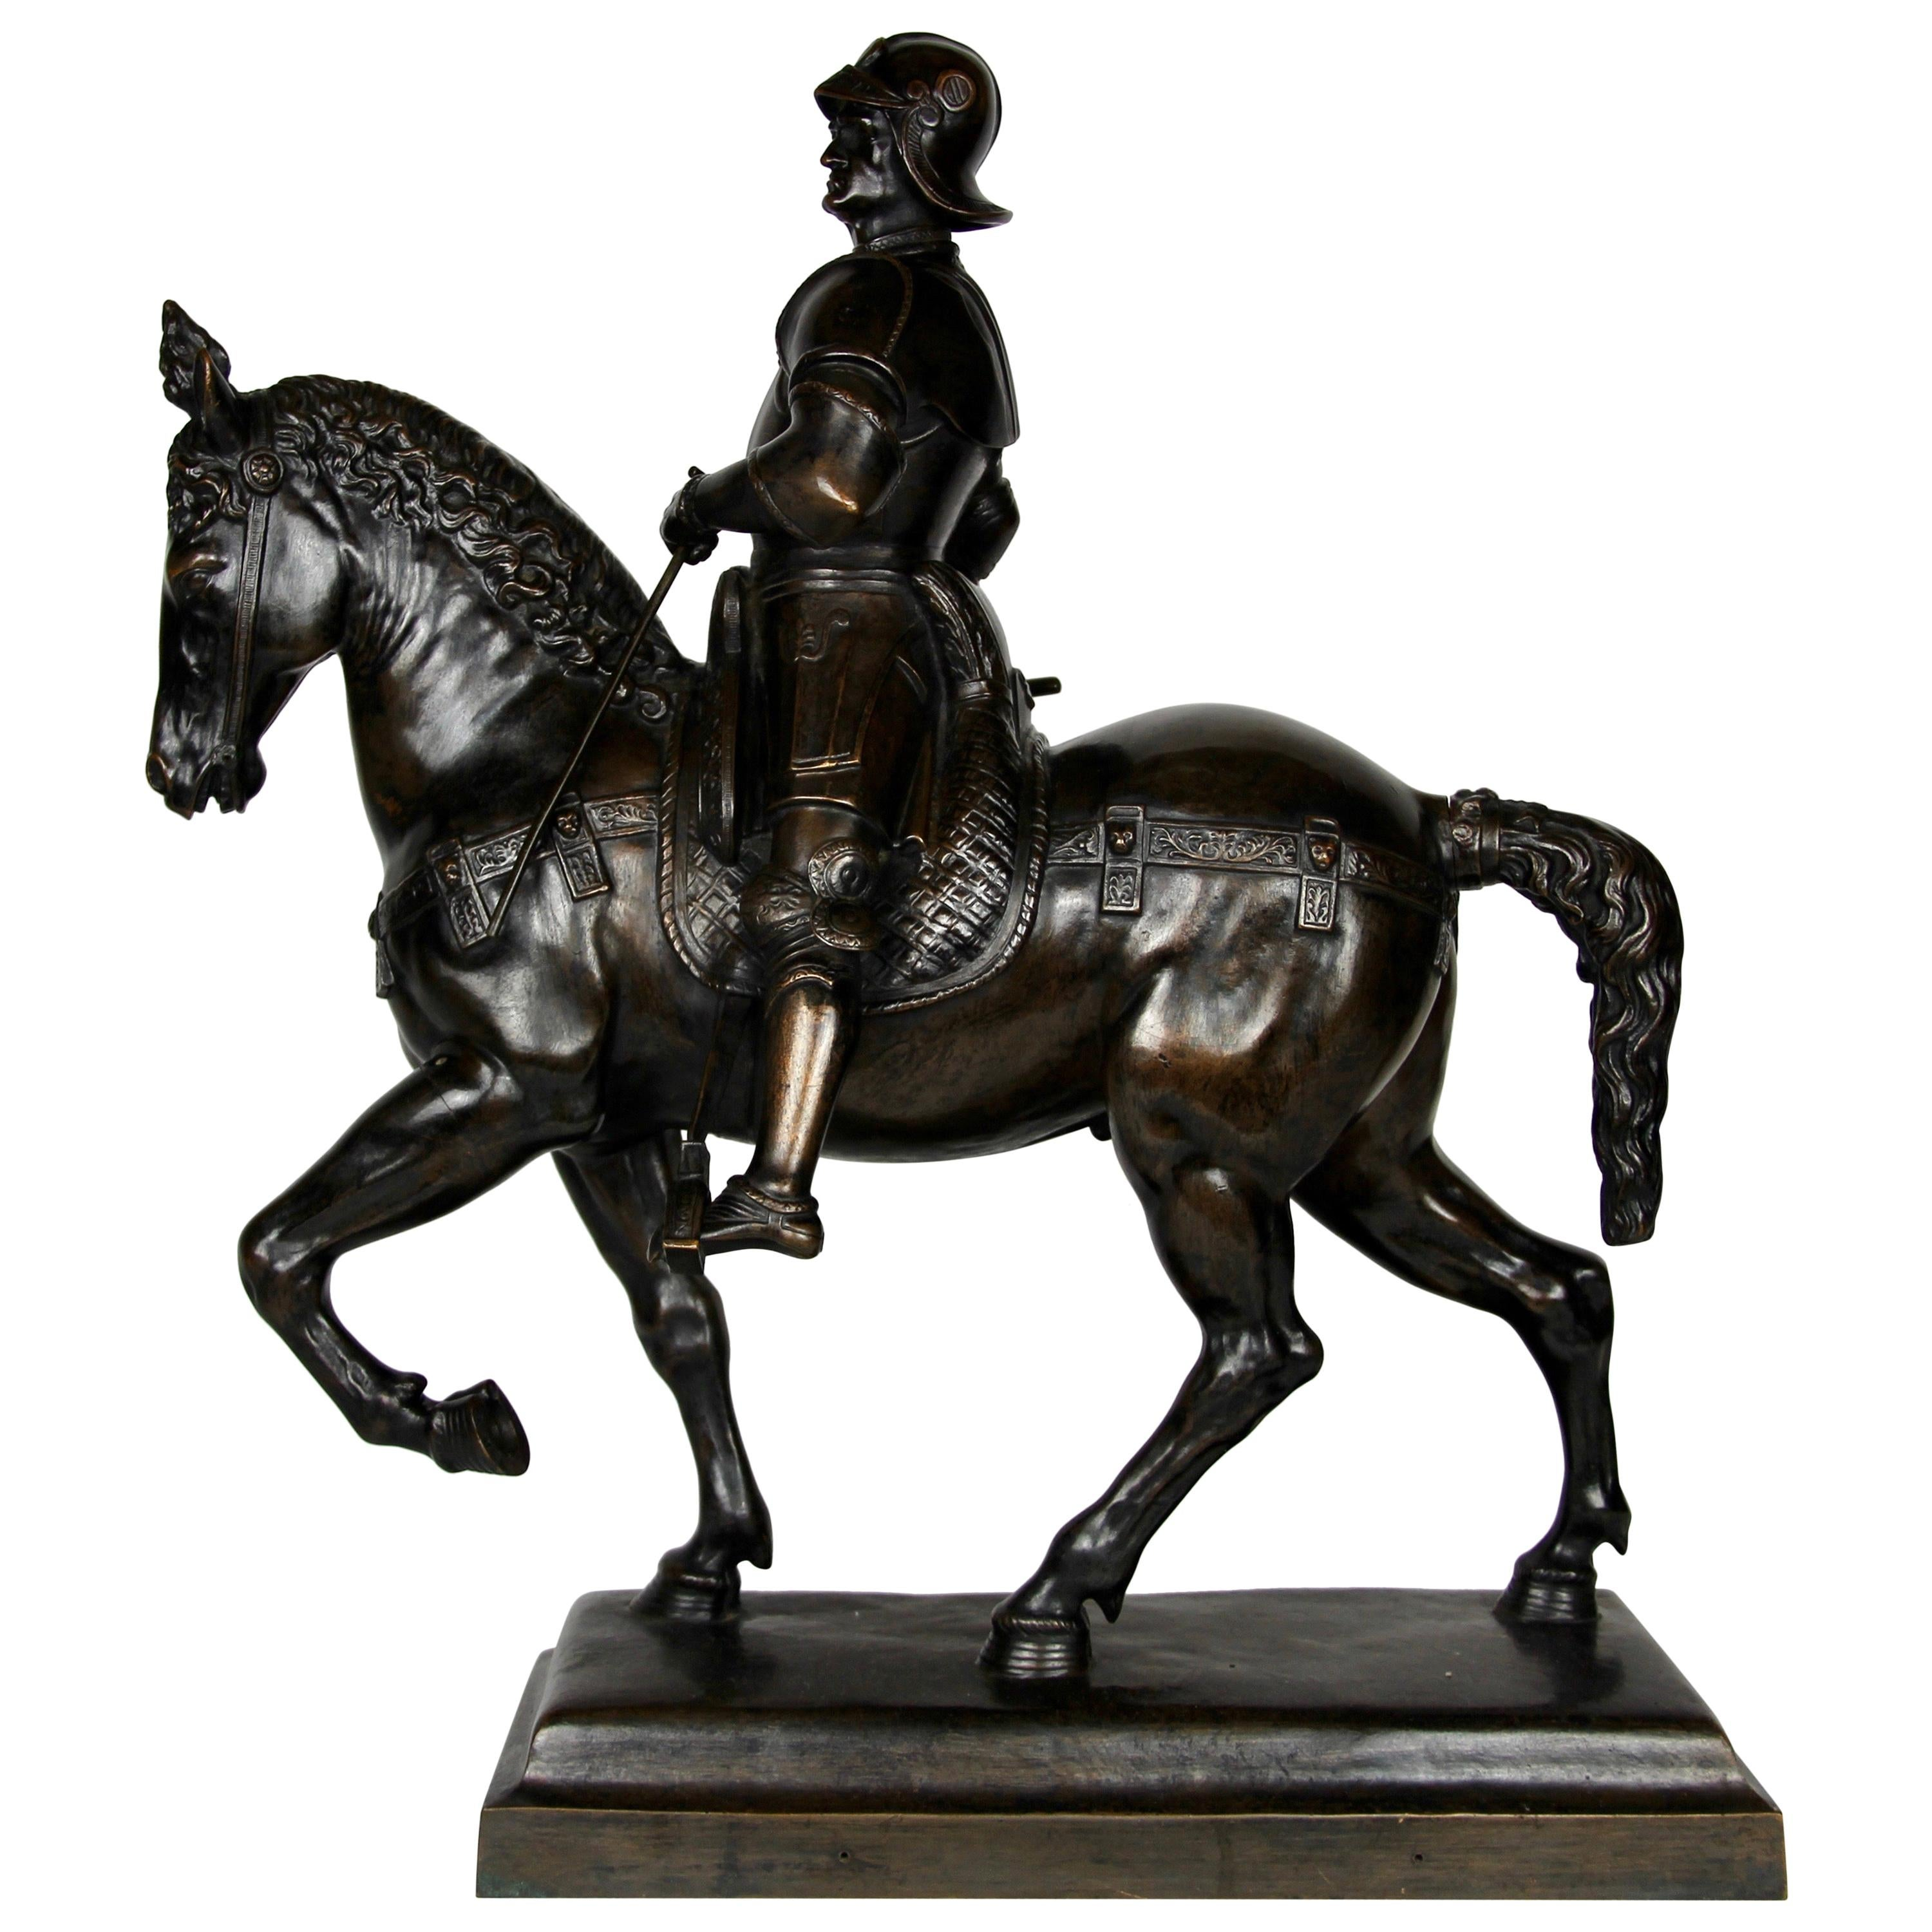 Patinated Bronze Figure of a Soldier on a Horse with a Helmet